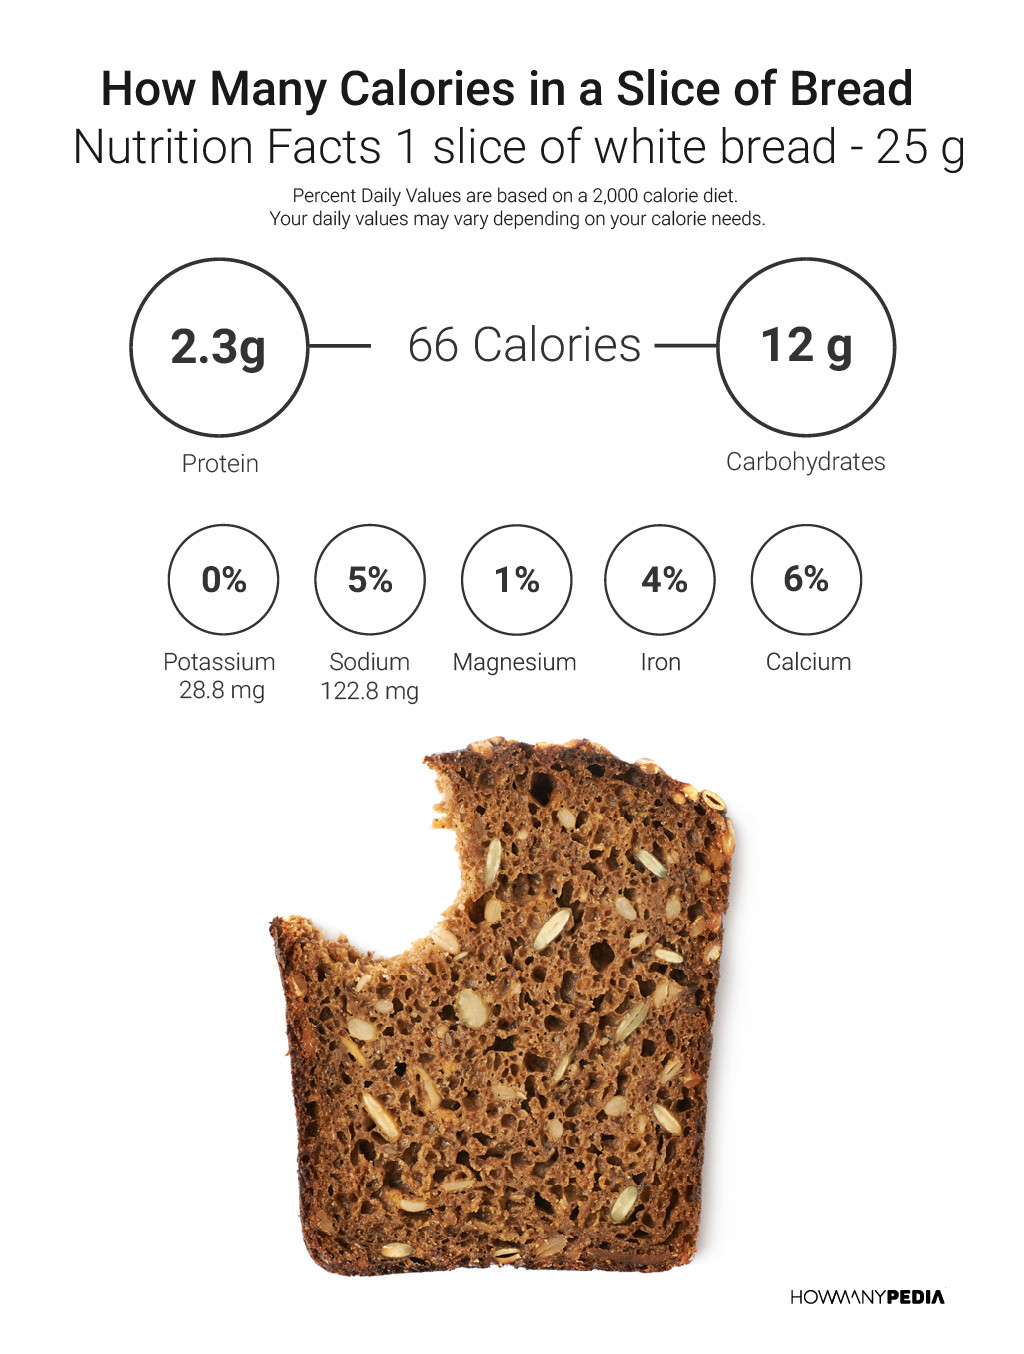 How Many Calories In A Slice Of White Bread  Wheat Bread Nutrition Facts 1 Slice – Nutrition Ftempo